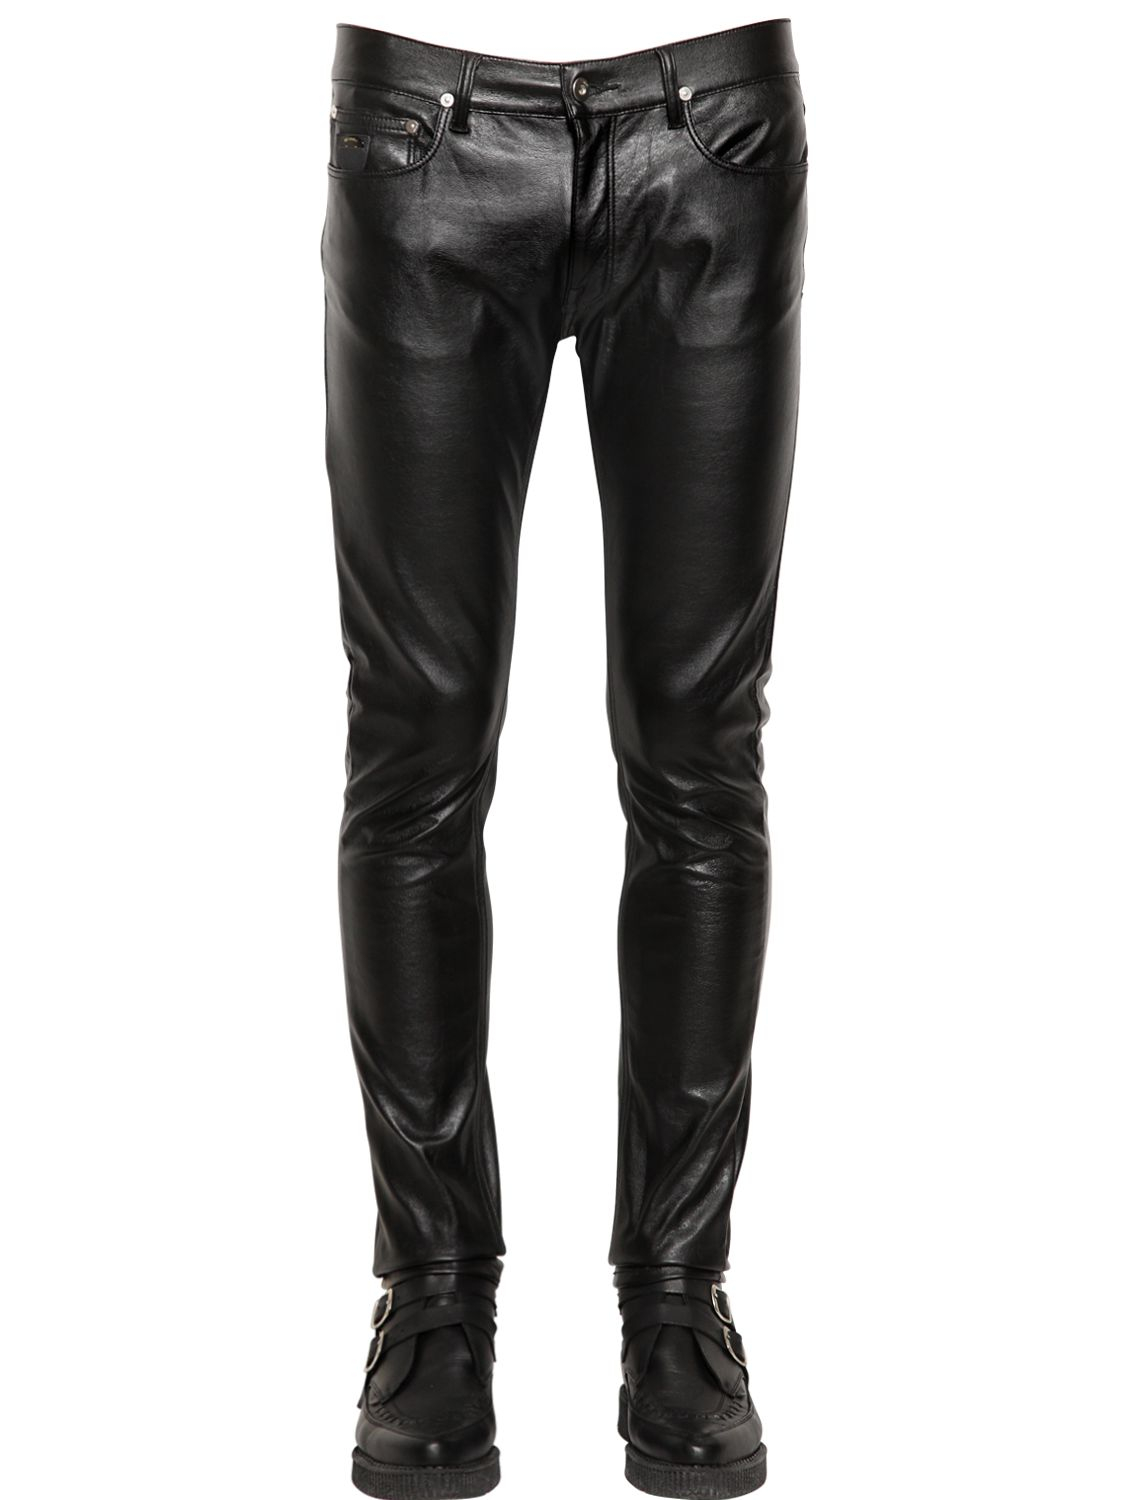 Find leather black pants men at ShopStyle. Shop the latest collection of leather black pants men from the most popular stores - all in one place.